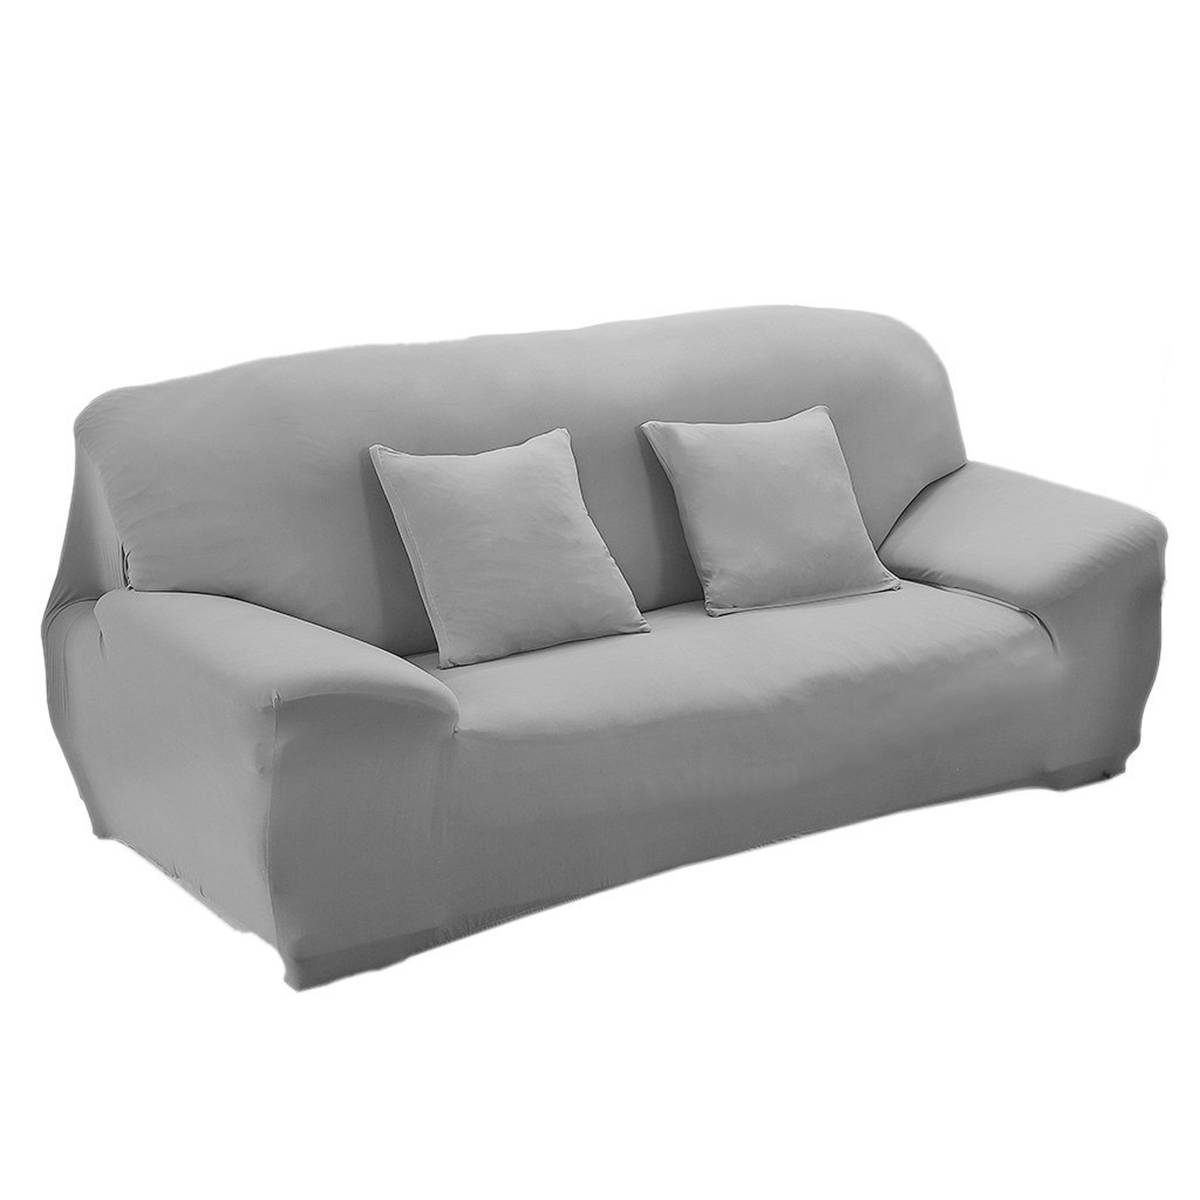 Popular Couch Chair Covers-Buy Cheap Couch Chair Covers Lots From in Sofa And Chair Covers (Image 21 of 30)